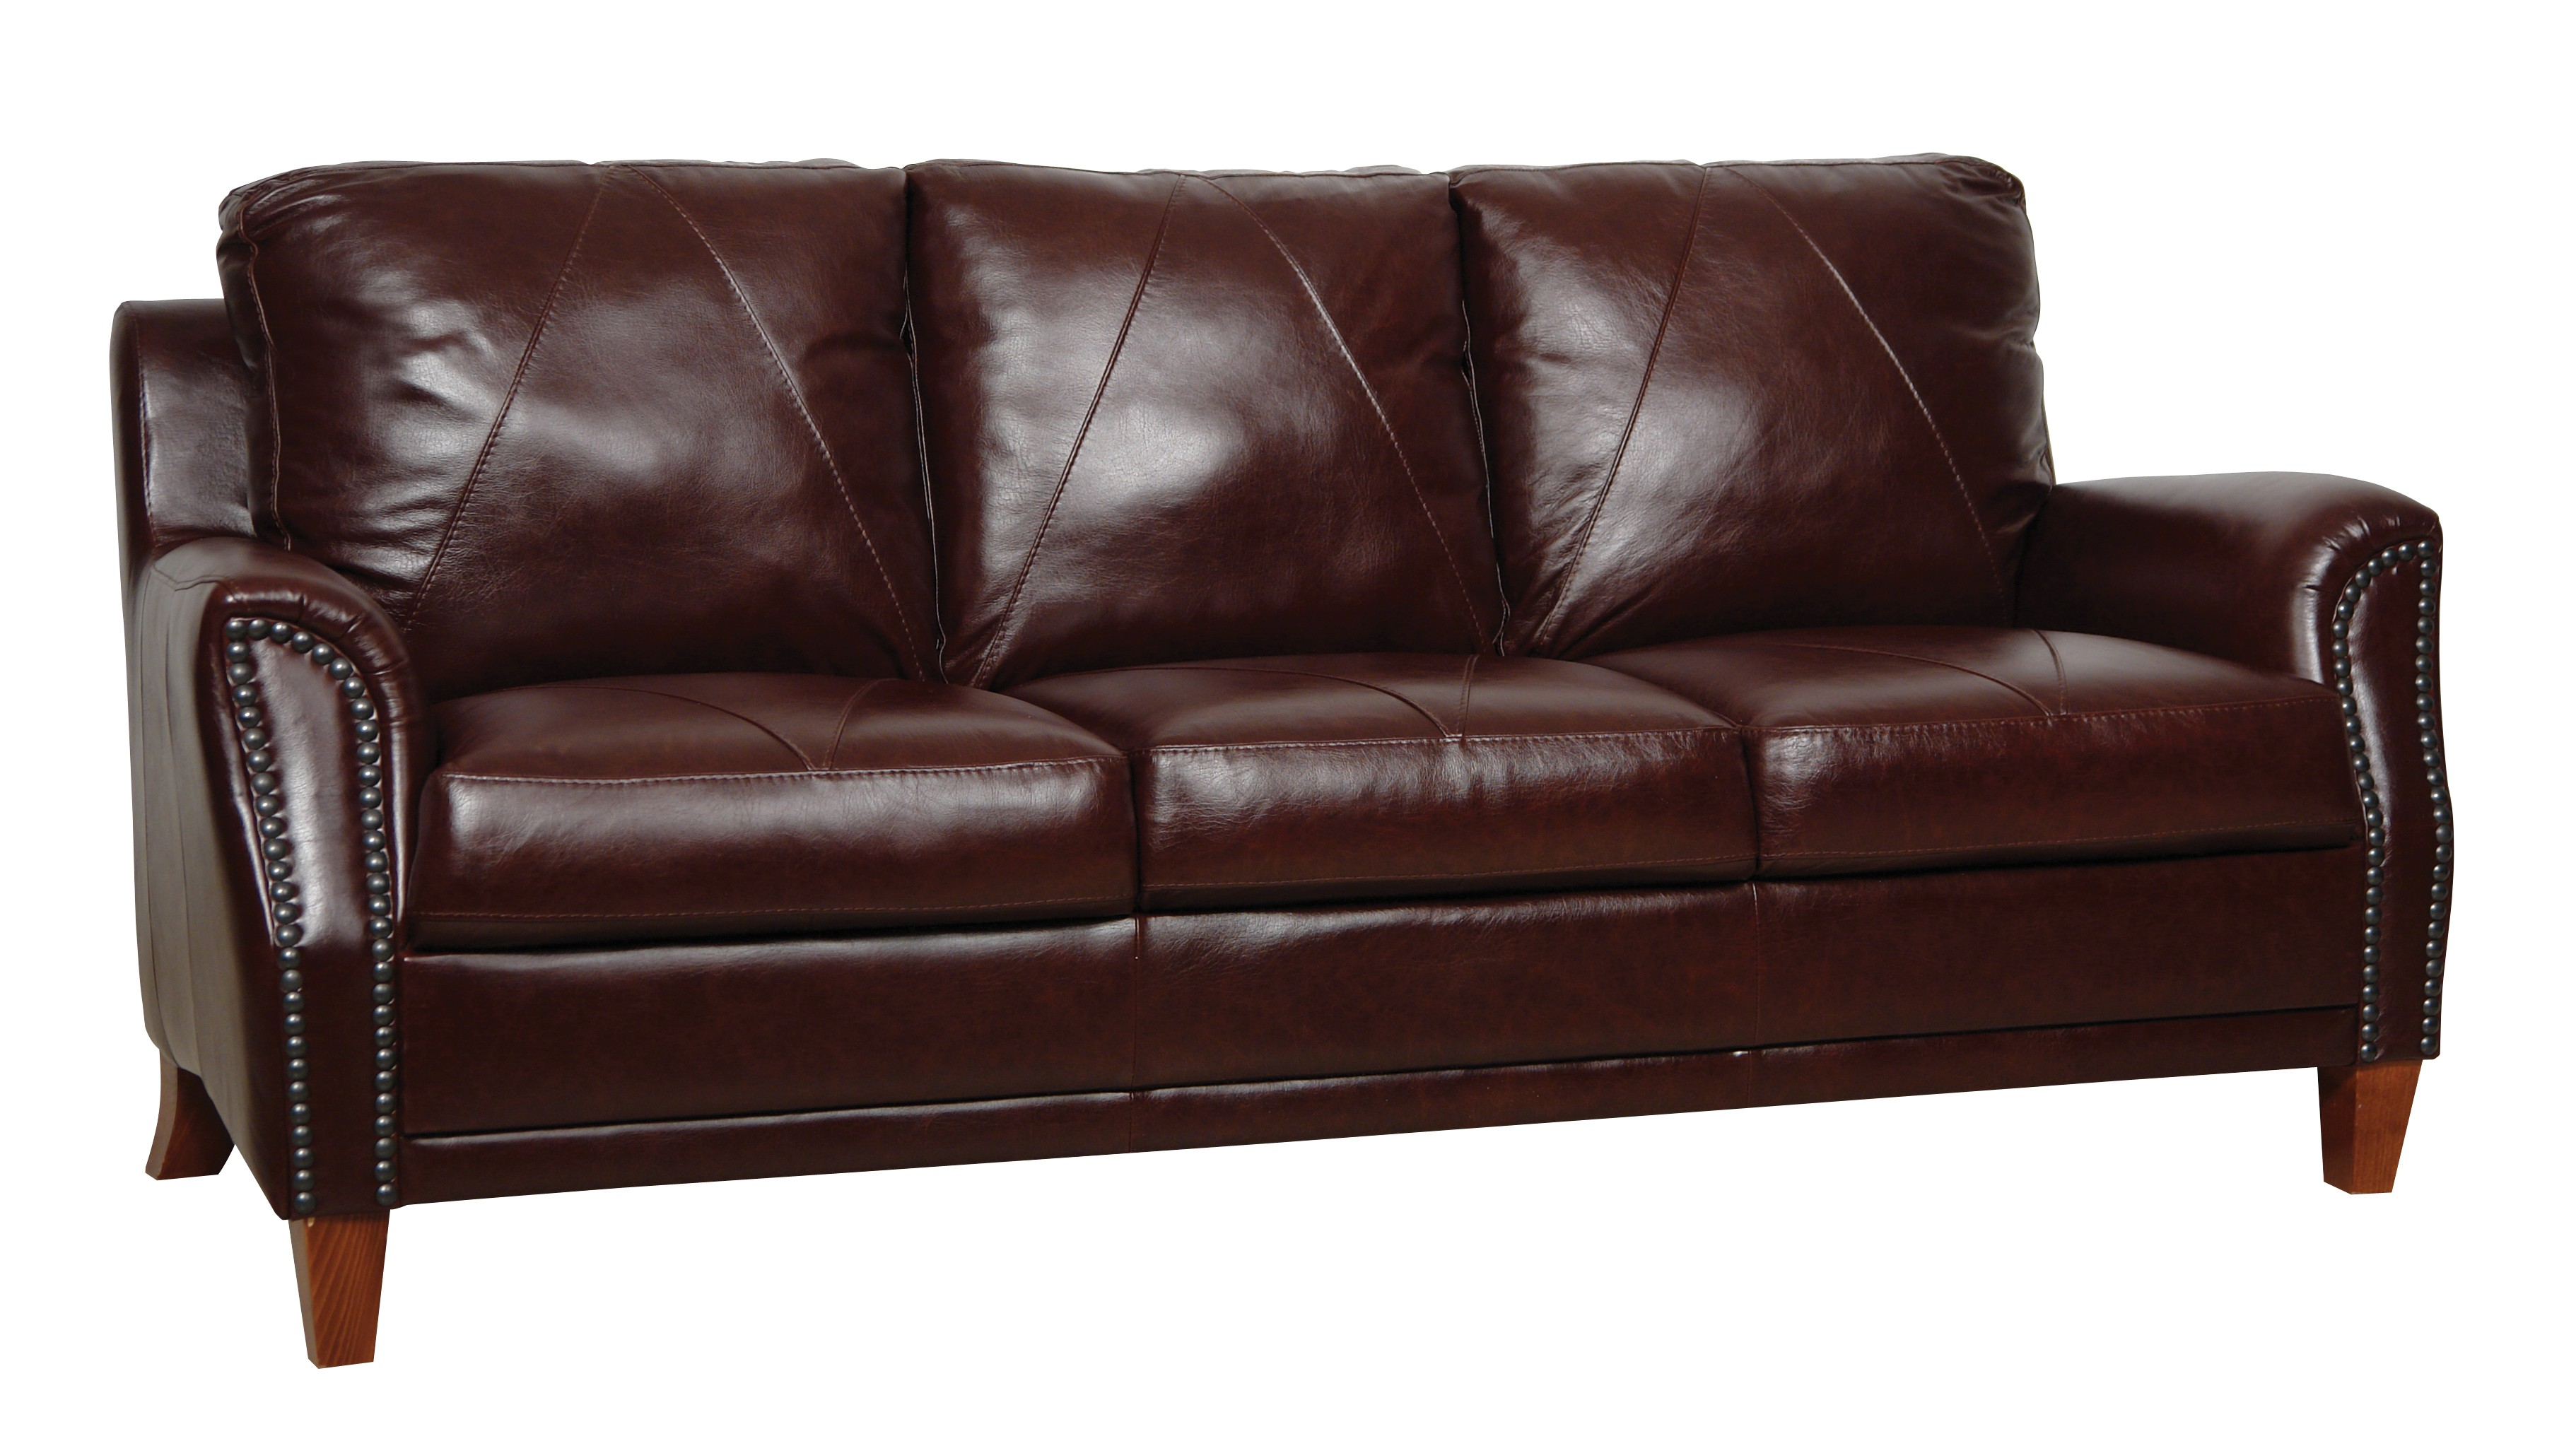 Austin Sienna Finish Italian Leather Sofa Luk Austin S Luke Leather